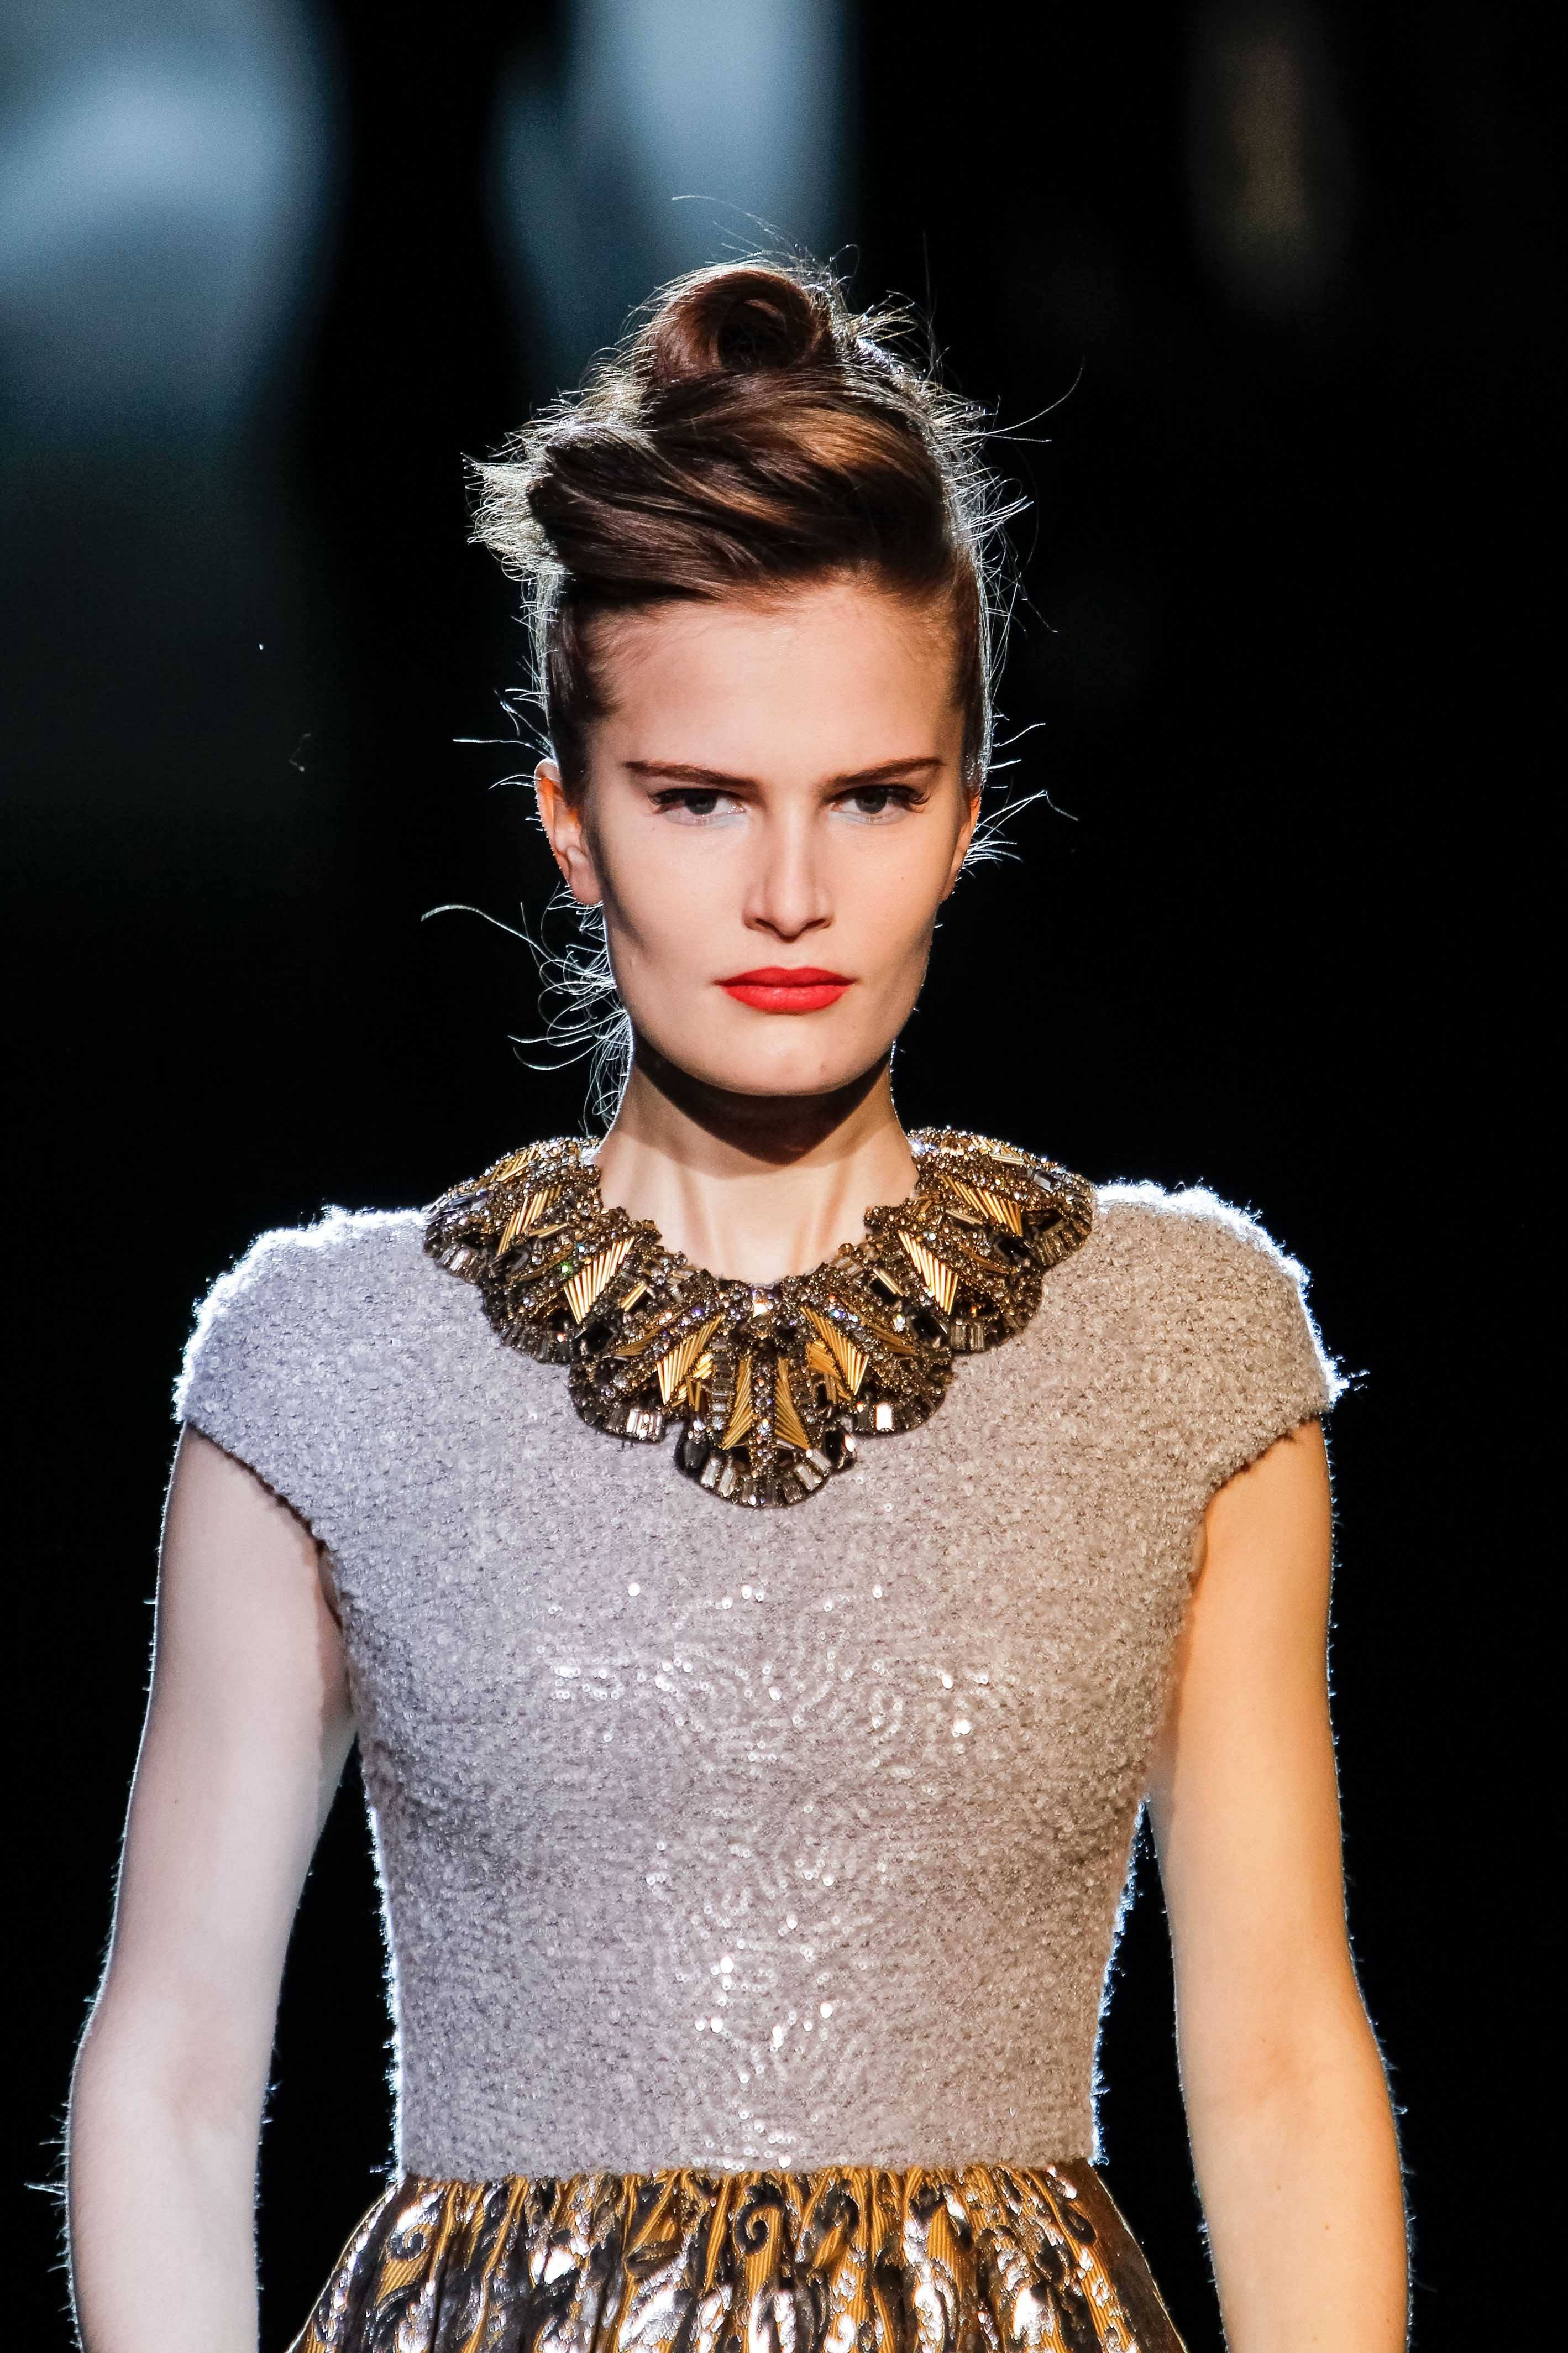 create winter ball hairstyles with this chic pompadour